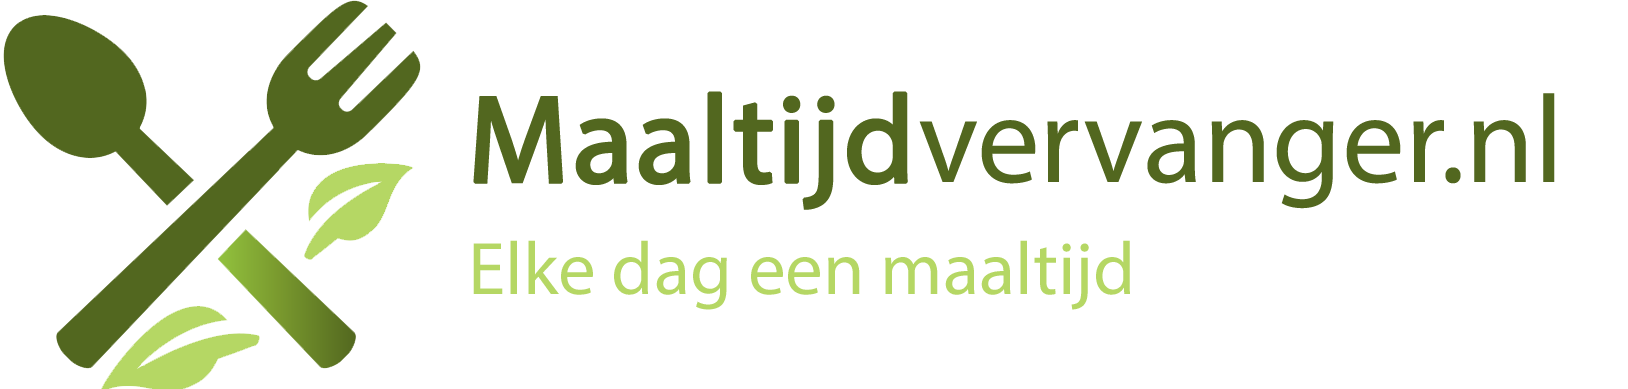 Maaltijdvervangers